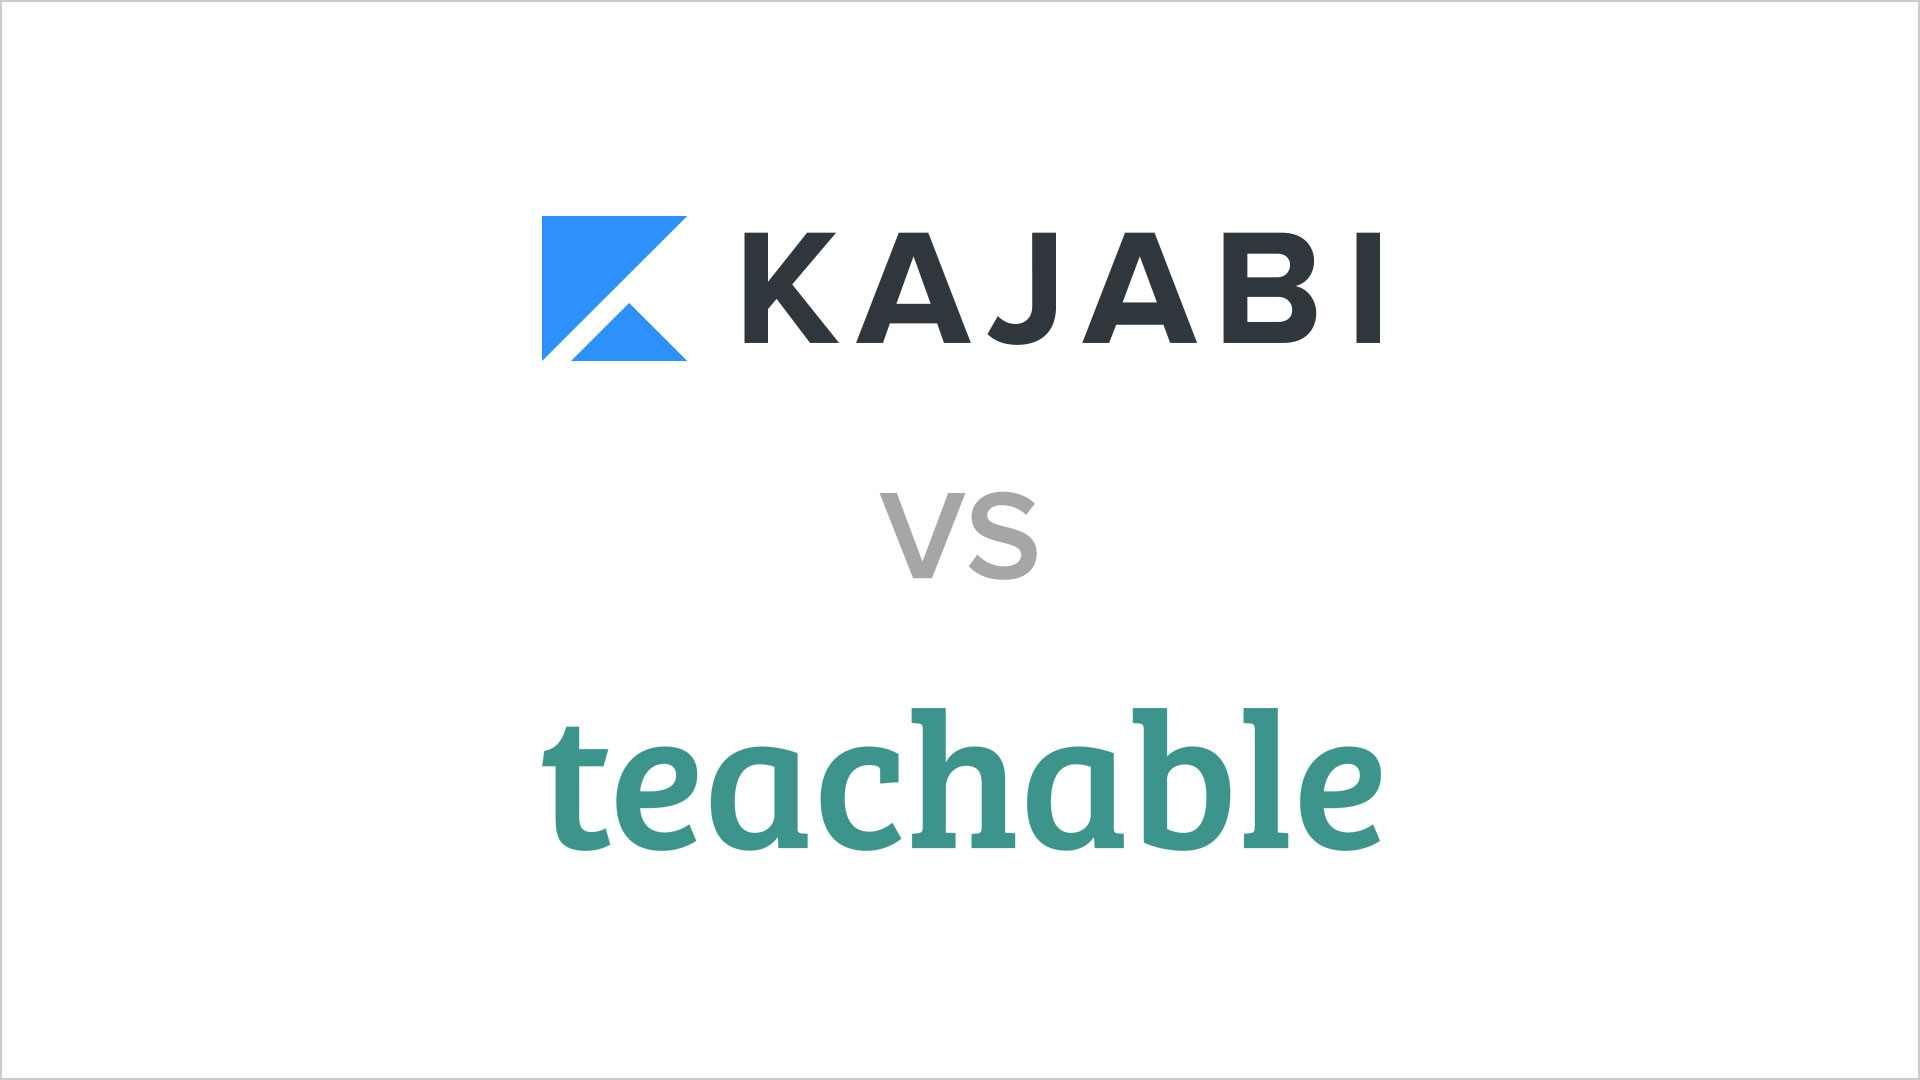 Online Course Platform - Kajabi vs Teachable